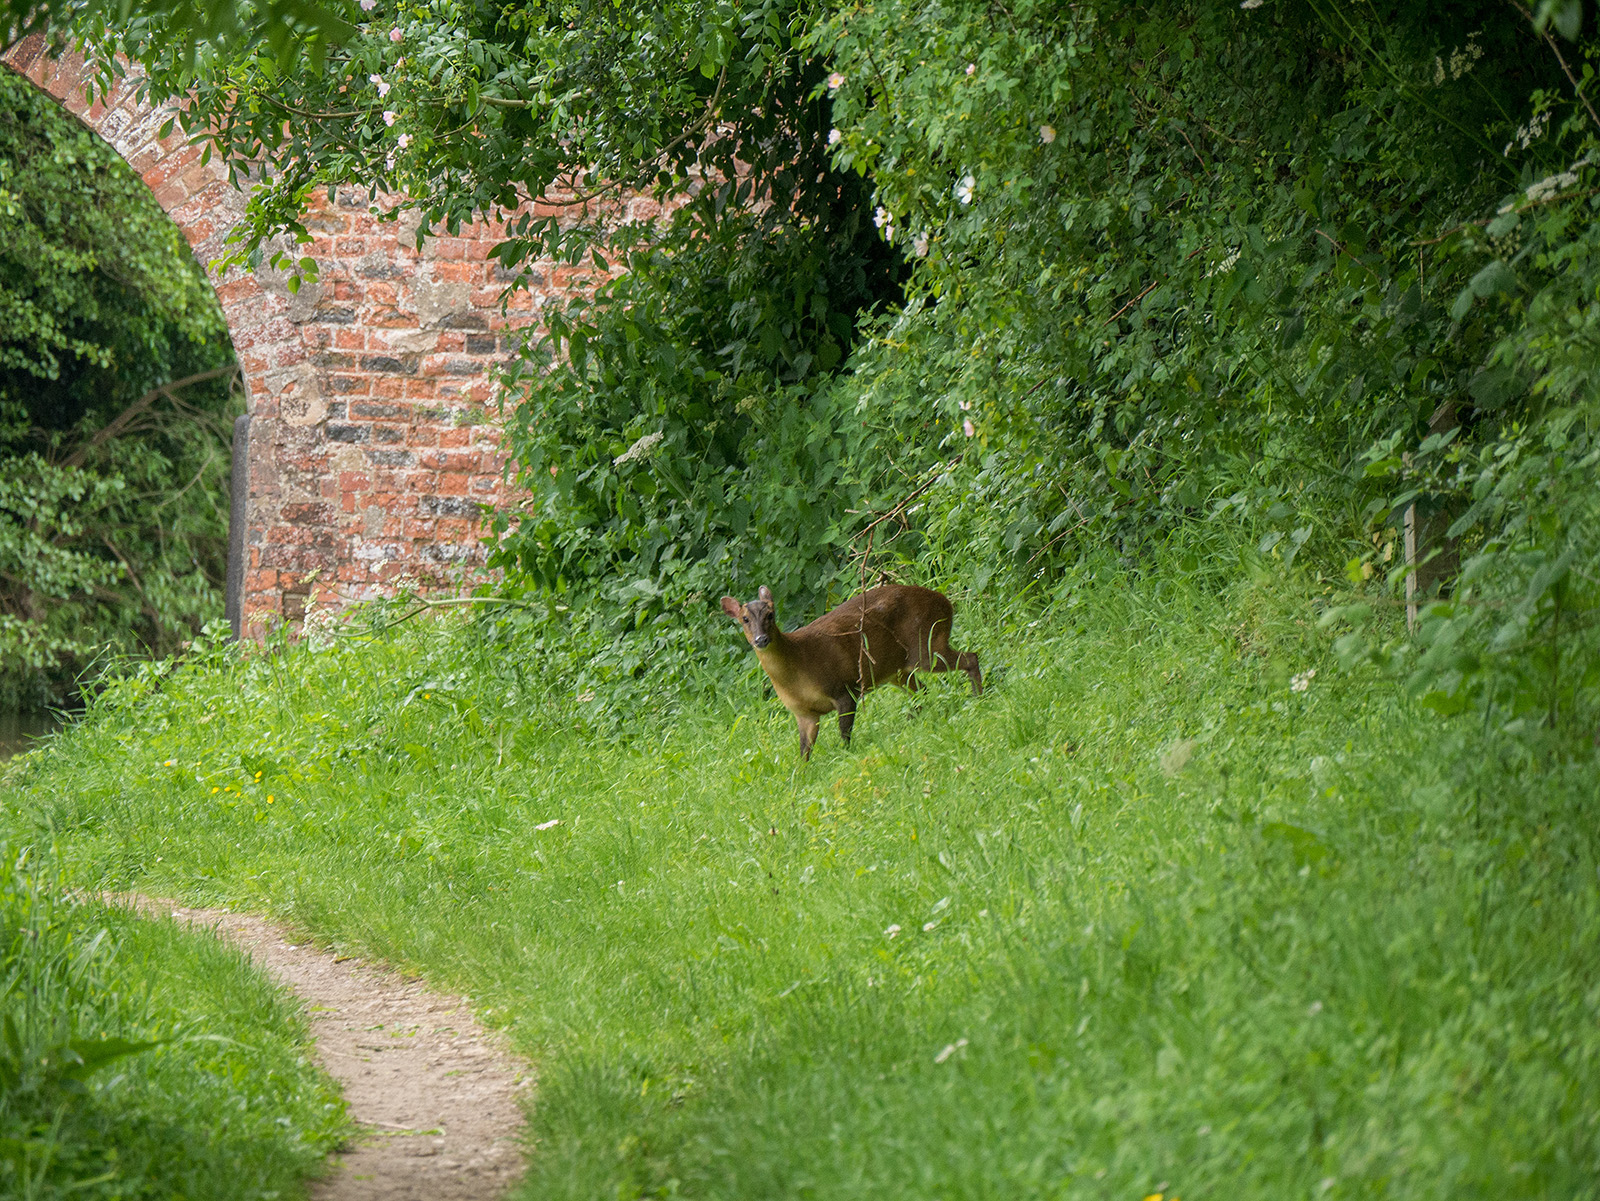 Oh deer - something's taking a sneaky look at the canal!